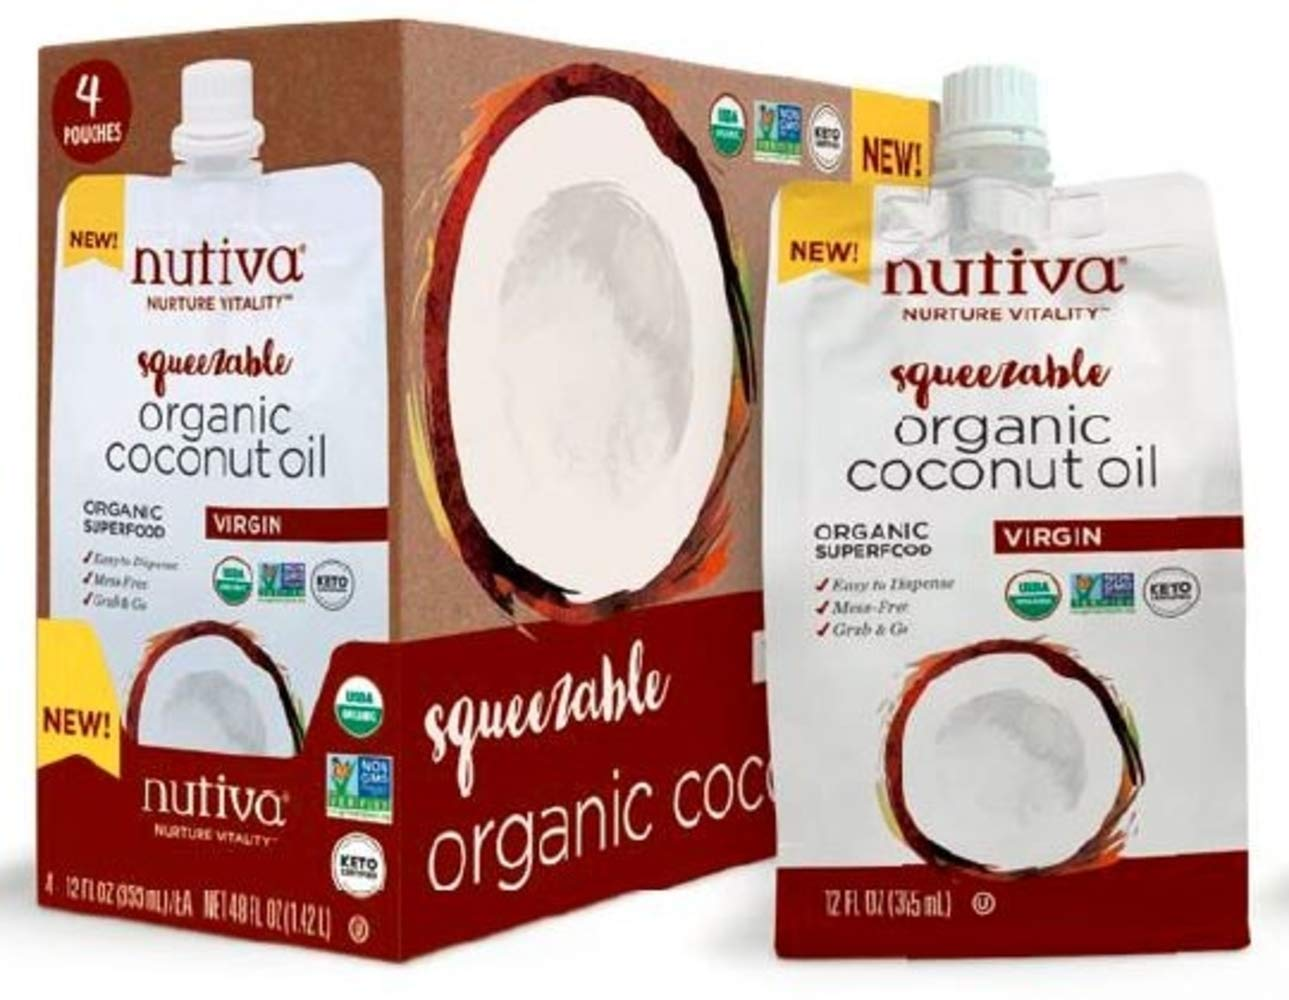 Nutiva Organic, Unrefined, Virgin Coconut Oil, Squeezable 12-ounce Pouch (Pack of 4)